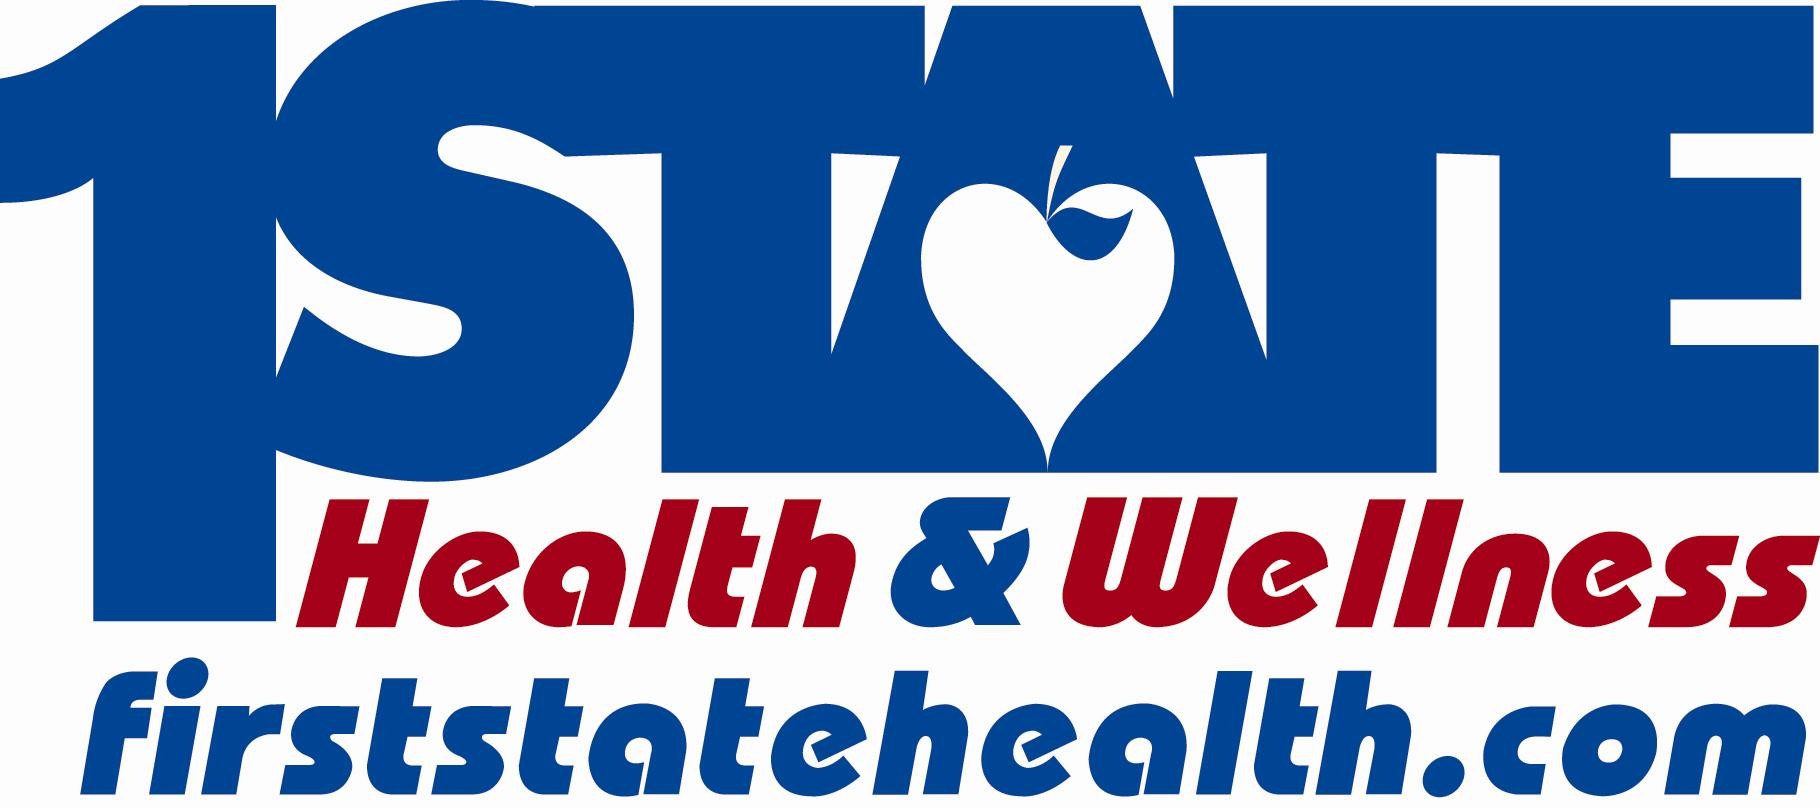 First State Health & Wellness